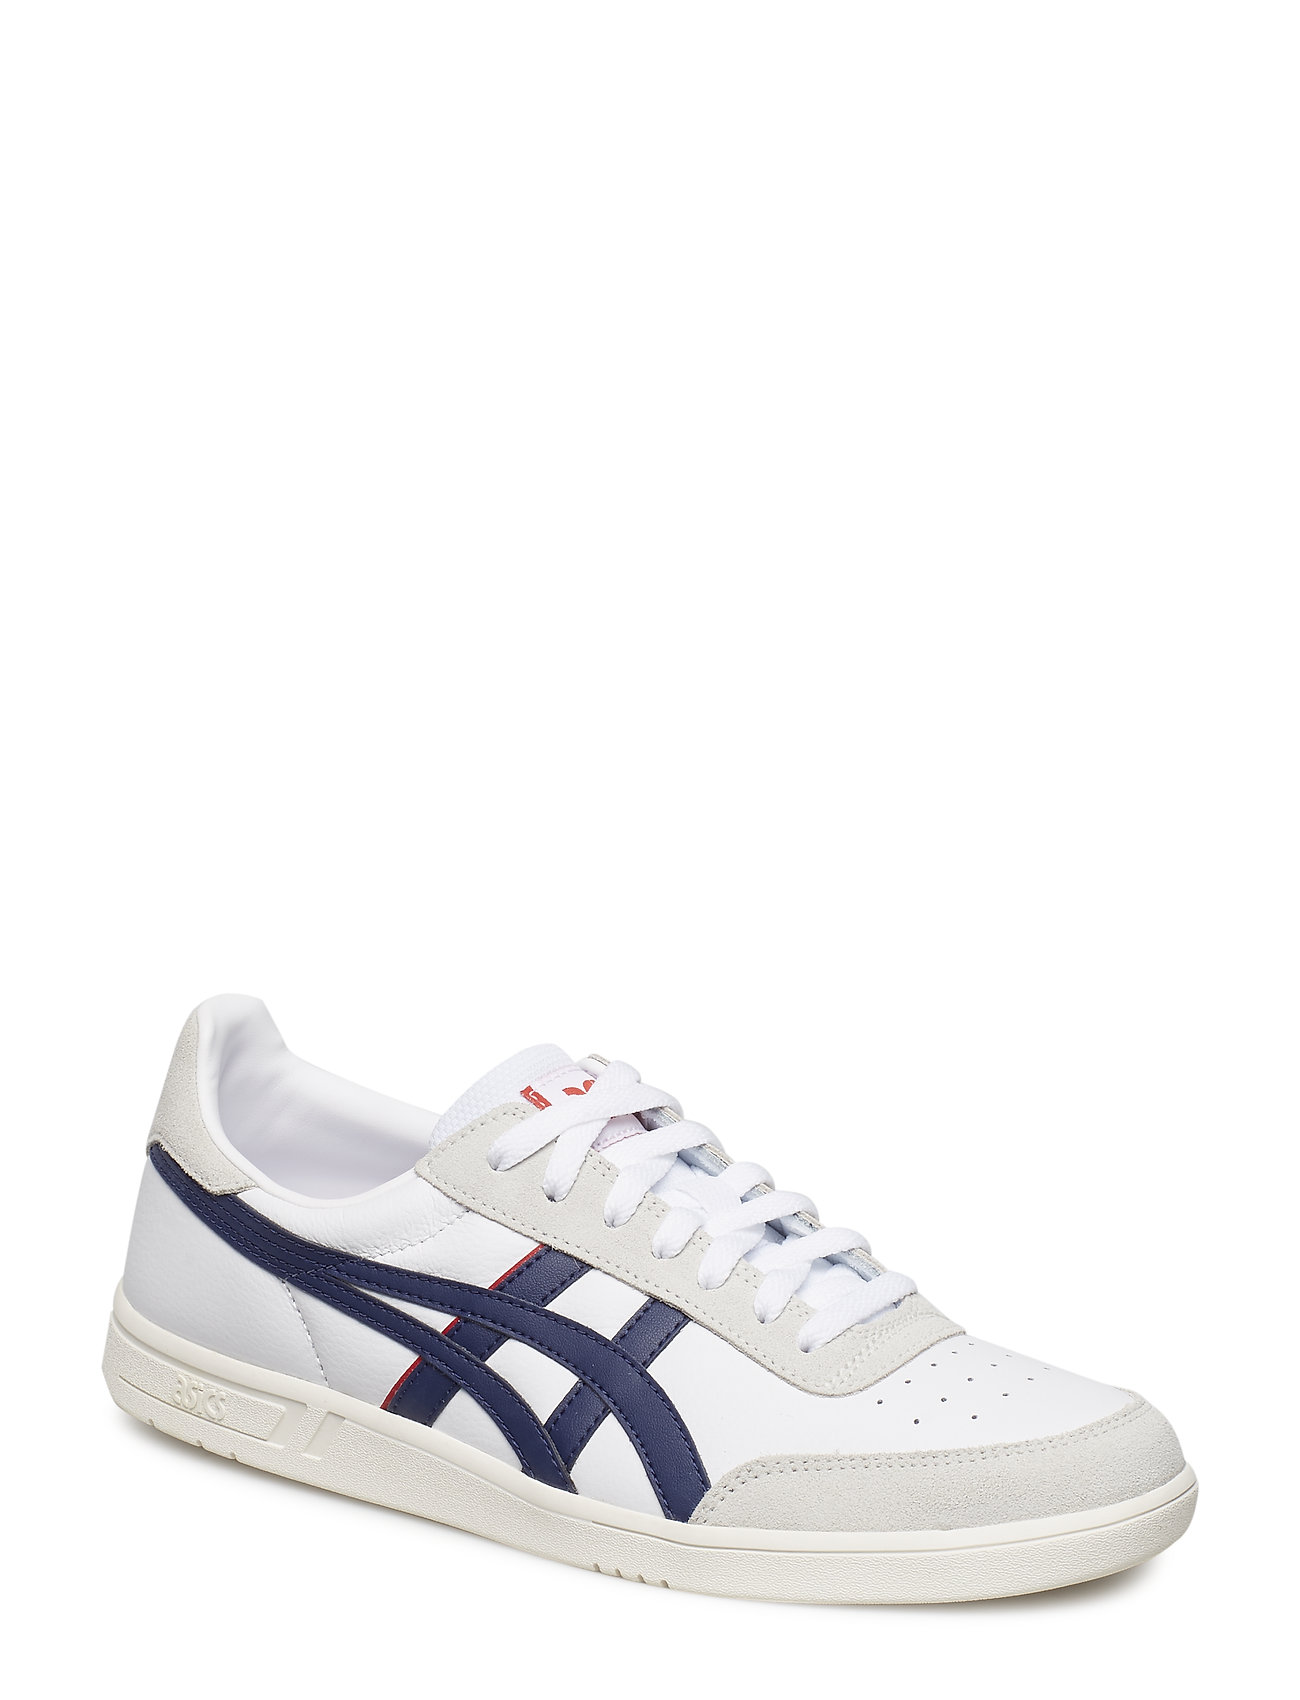 Image of Gel-Vickka Trs Shoes Sport Shoes Low-top Sneakers Hvid Asics Tiger (3073923859)